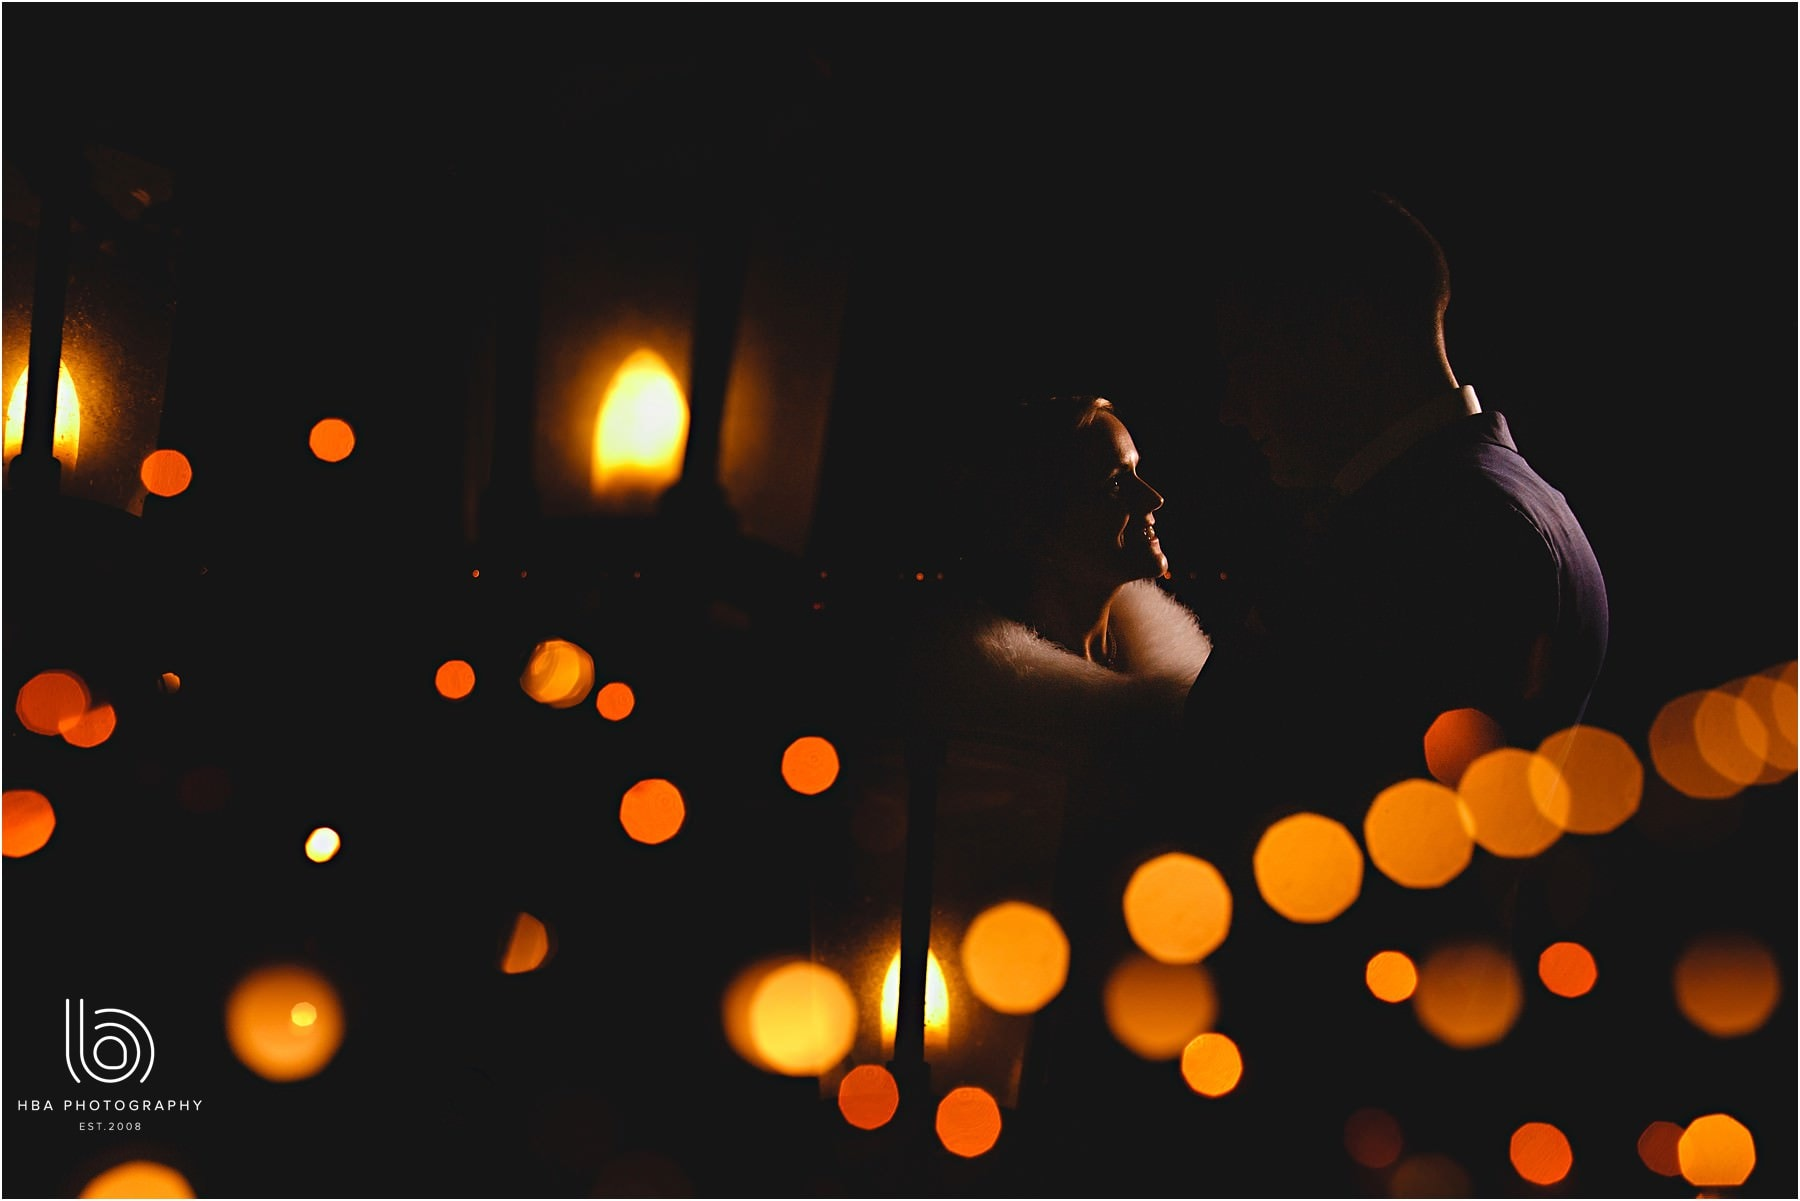 The bride and groom in the dark surrounded by orange lights